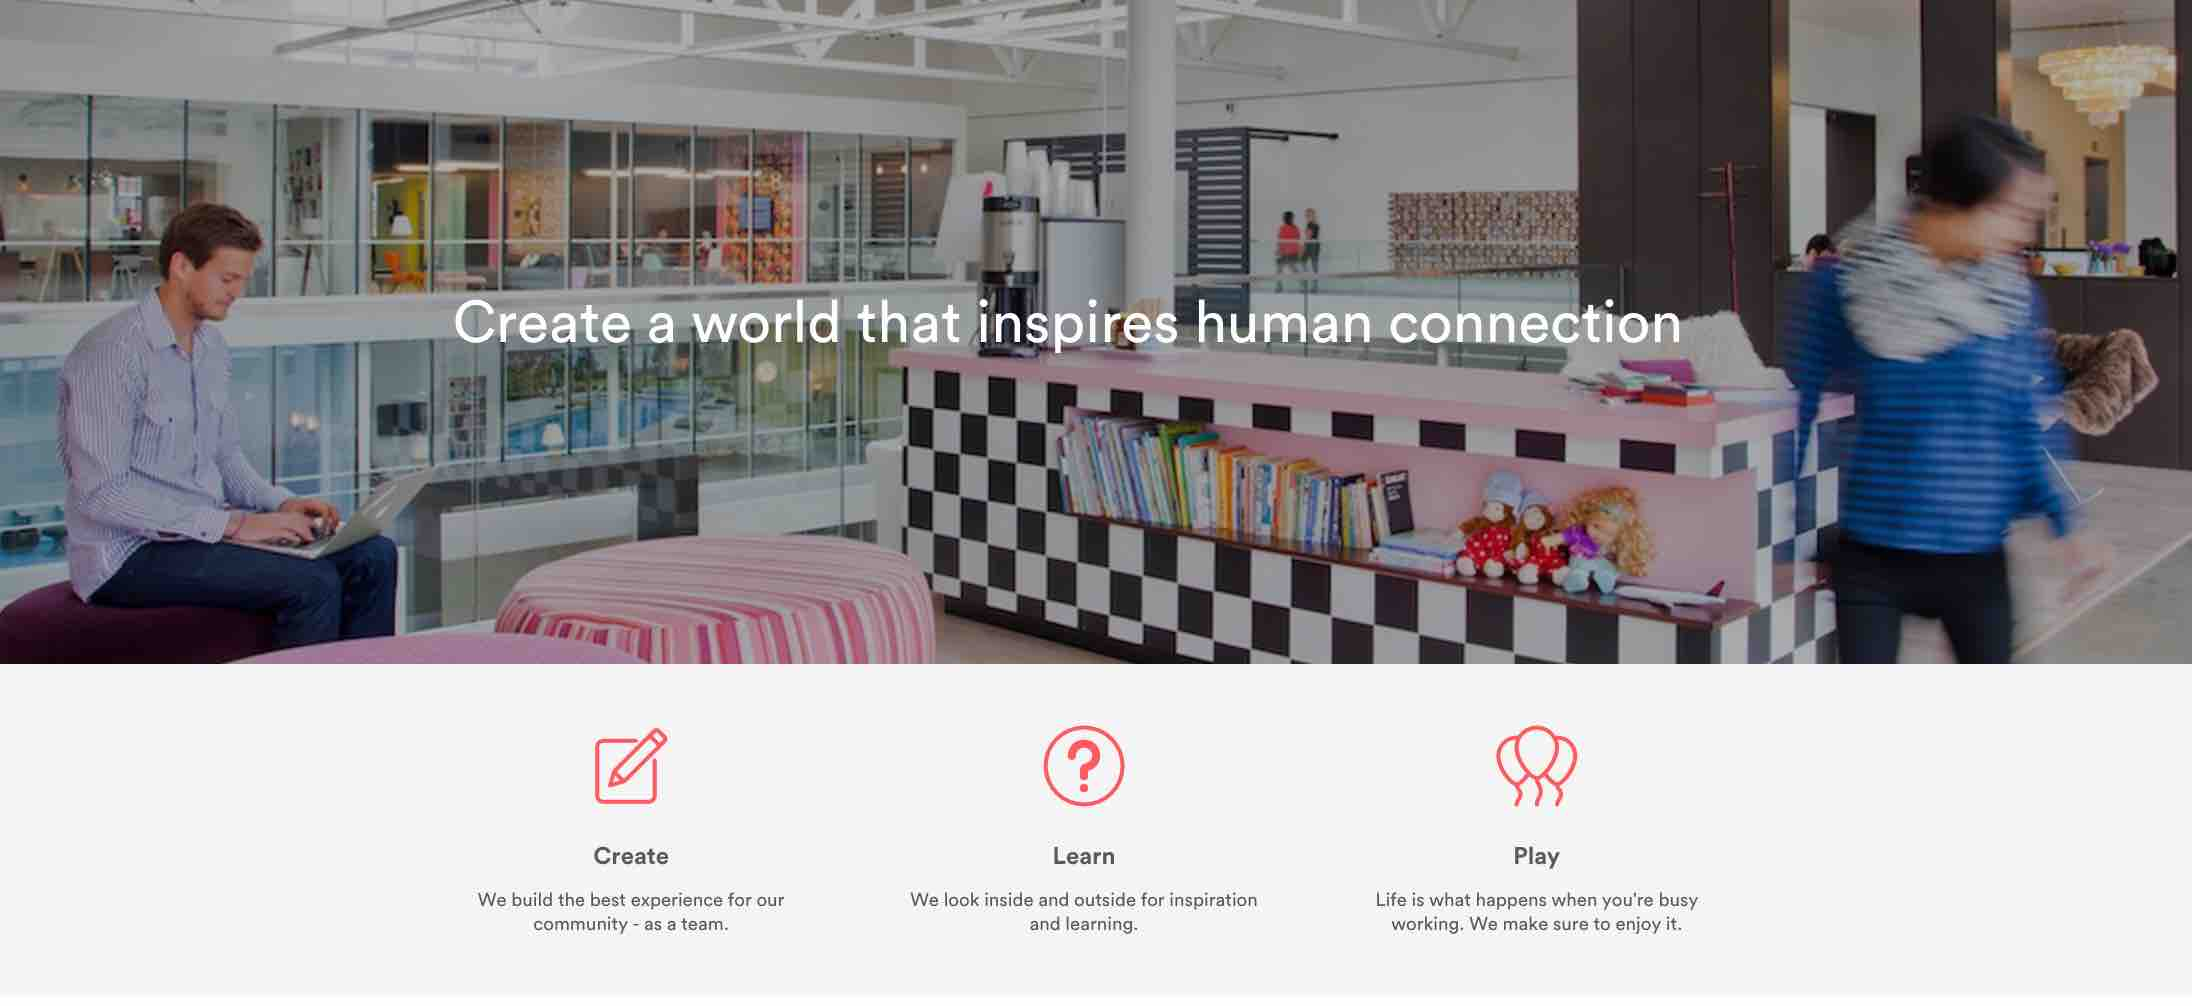 AirBnB's Awesome Career Page